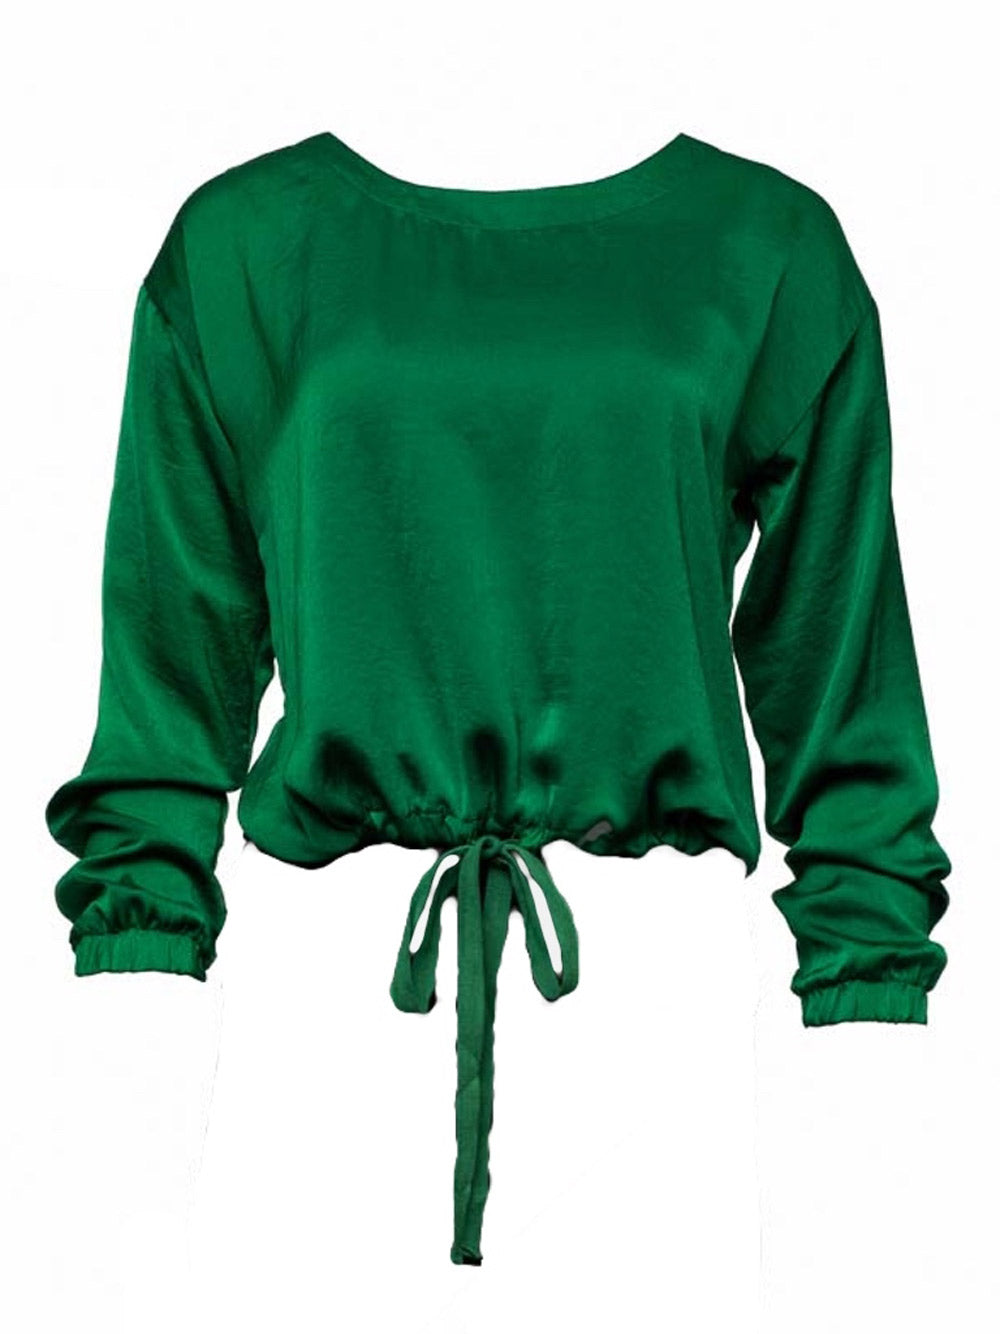 INZAGI Dina Drawstring Top - Green